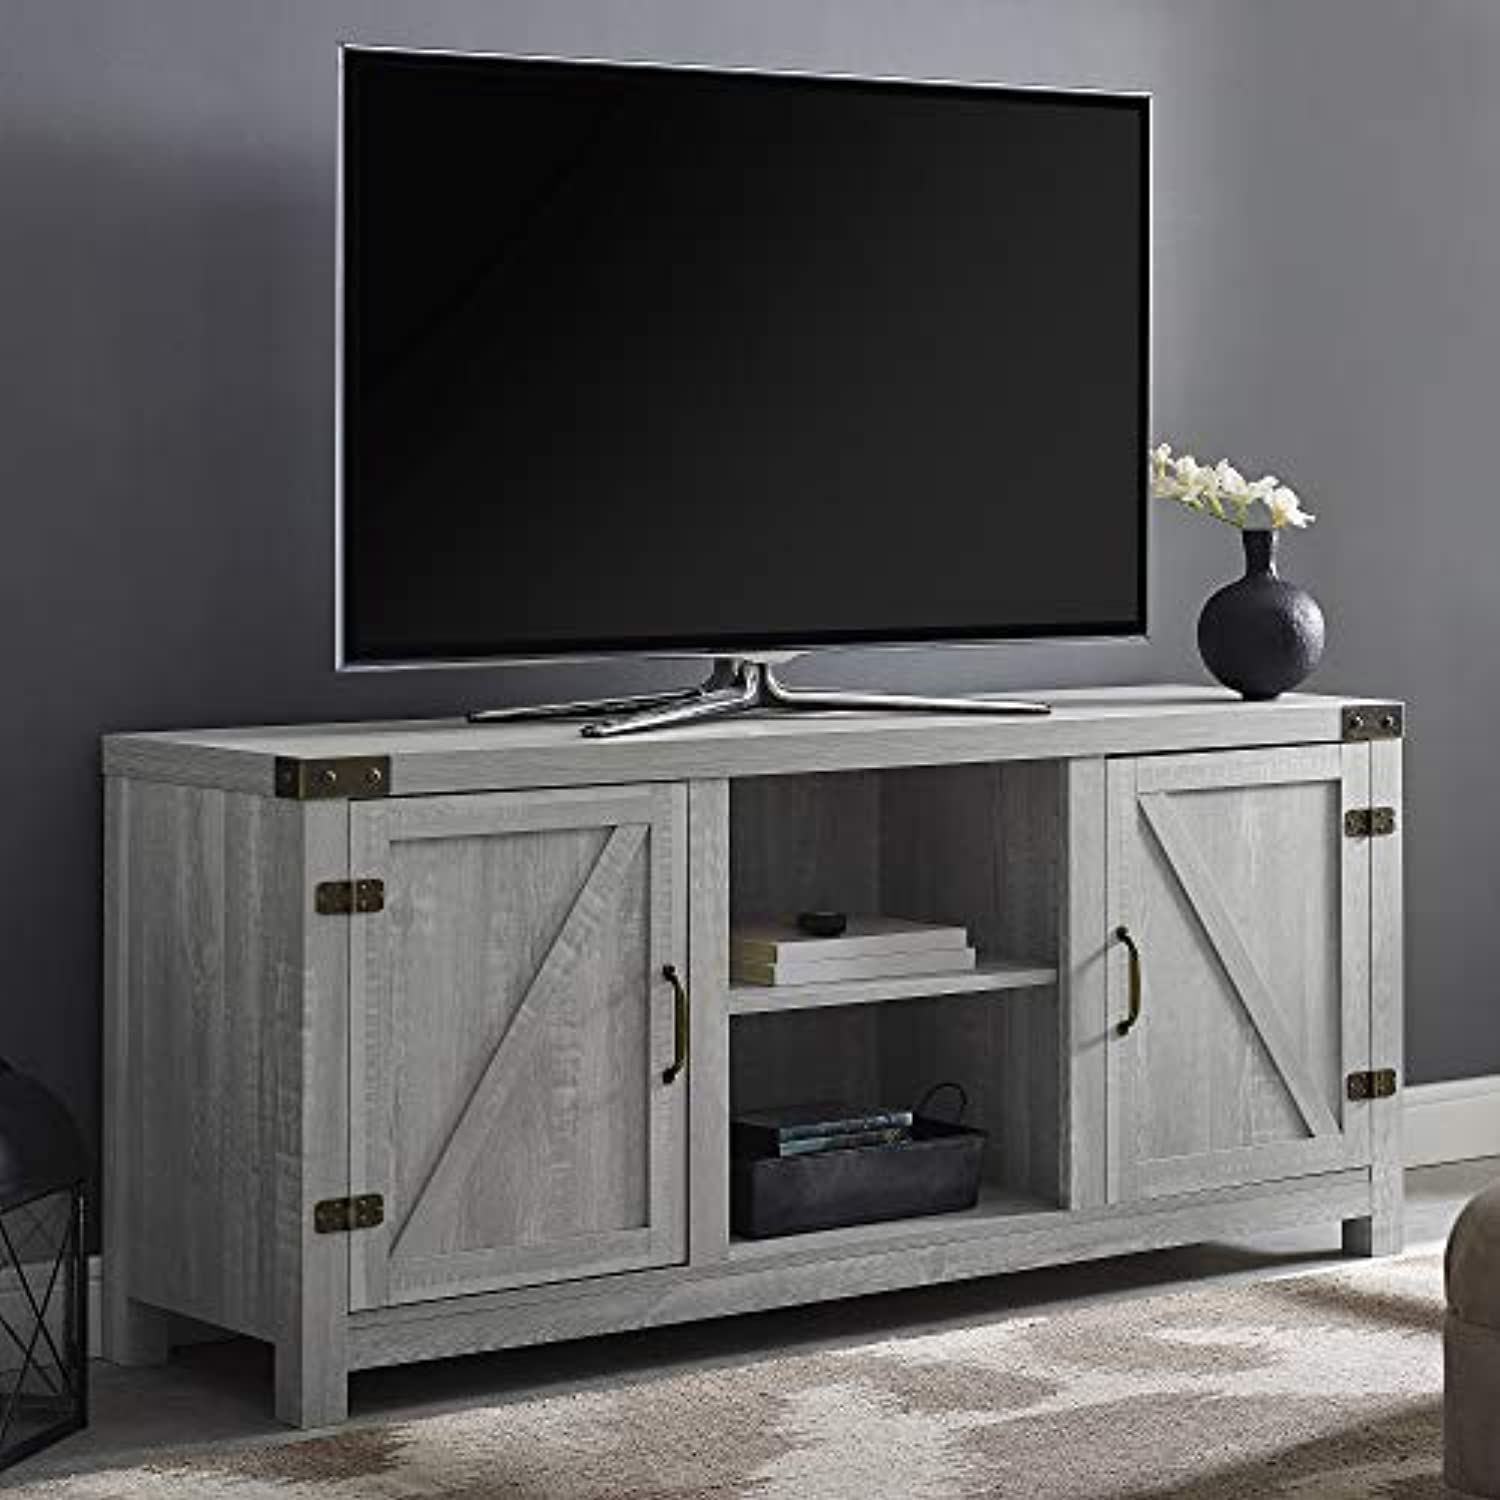 "Classier: Buy Walker Edison Furniture Company Walker Edison Furniture Company Farmhouse Barn Wood Universal Stand for TV's up to 64"" Flat Screen Living Room Storage Cabinet Doors and Shelves Entertainment Center, 58 Inch, Stone Grey"